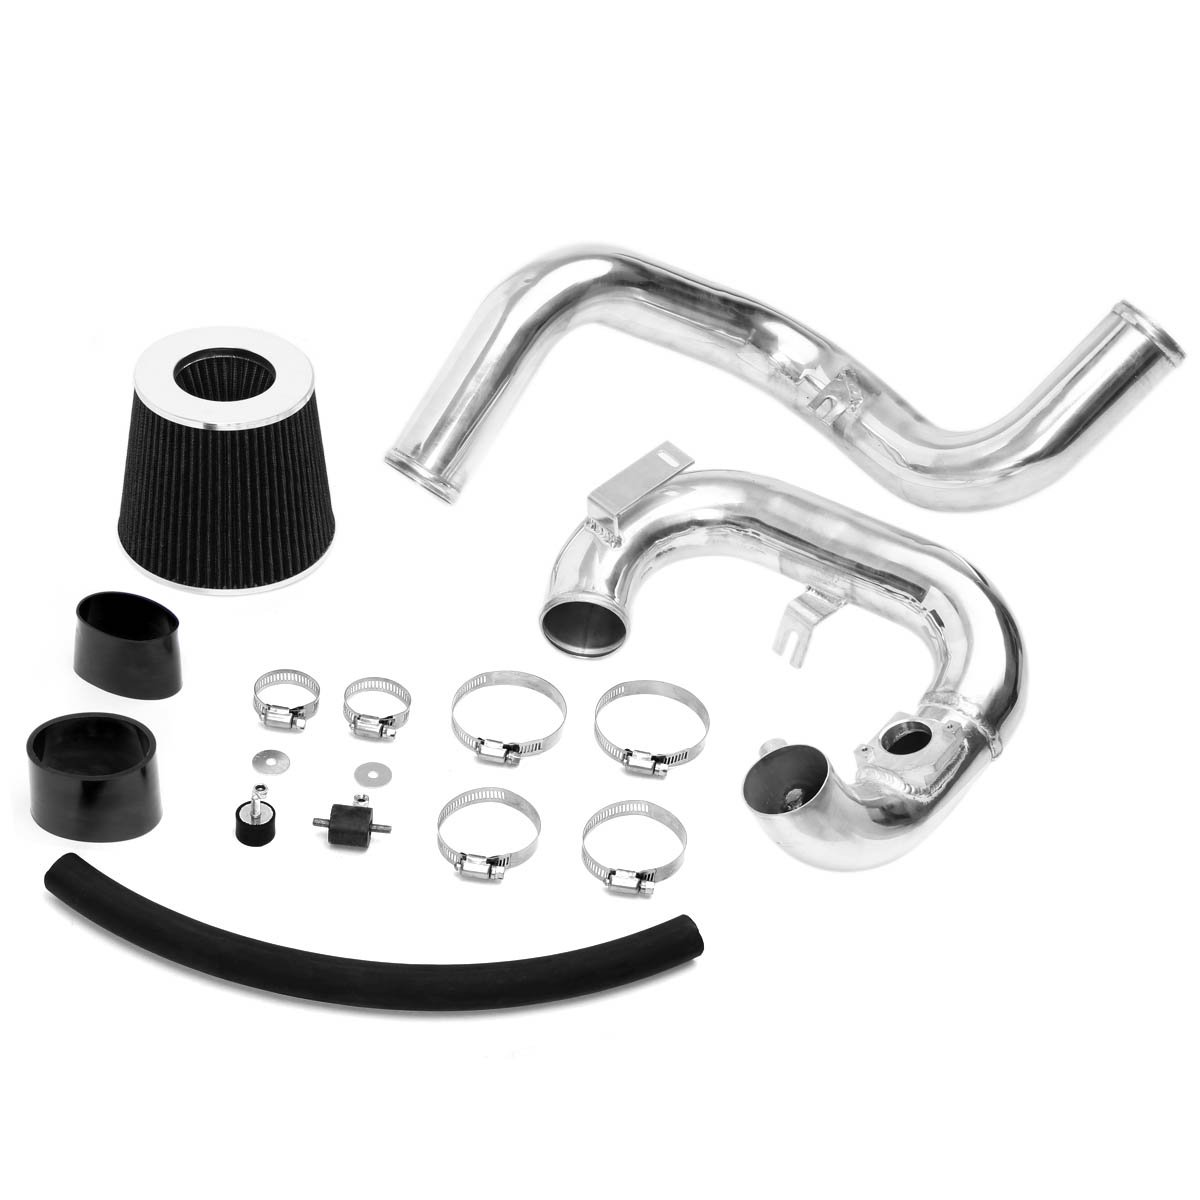 Amazon.com: For Scion xA/xB 1NZ-FE Aluminum Cold Air Intake Induction Kit (Black Filter): Automotive